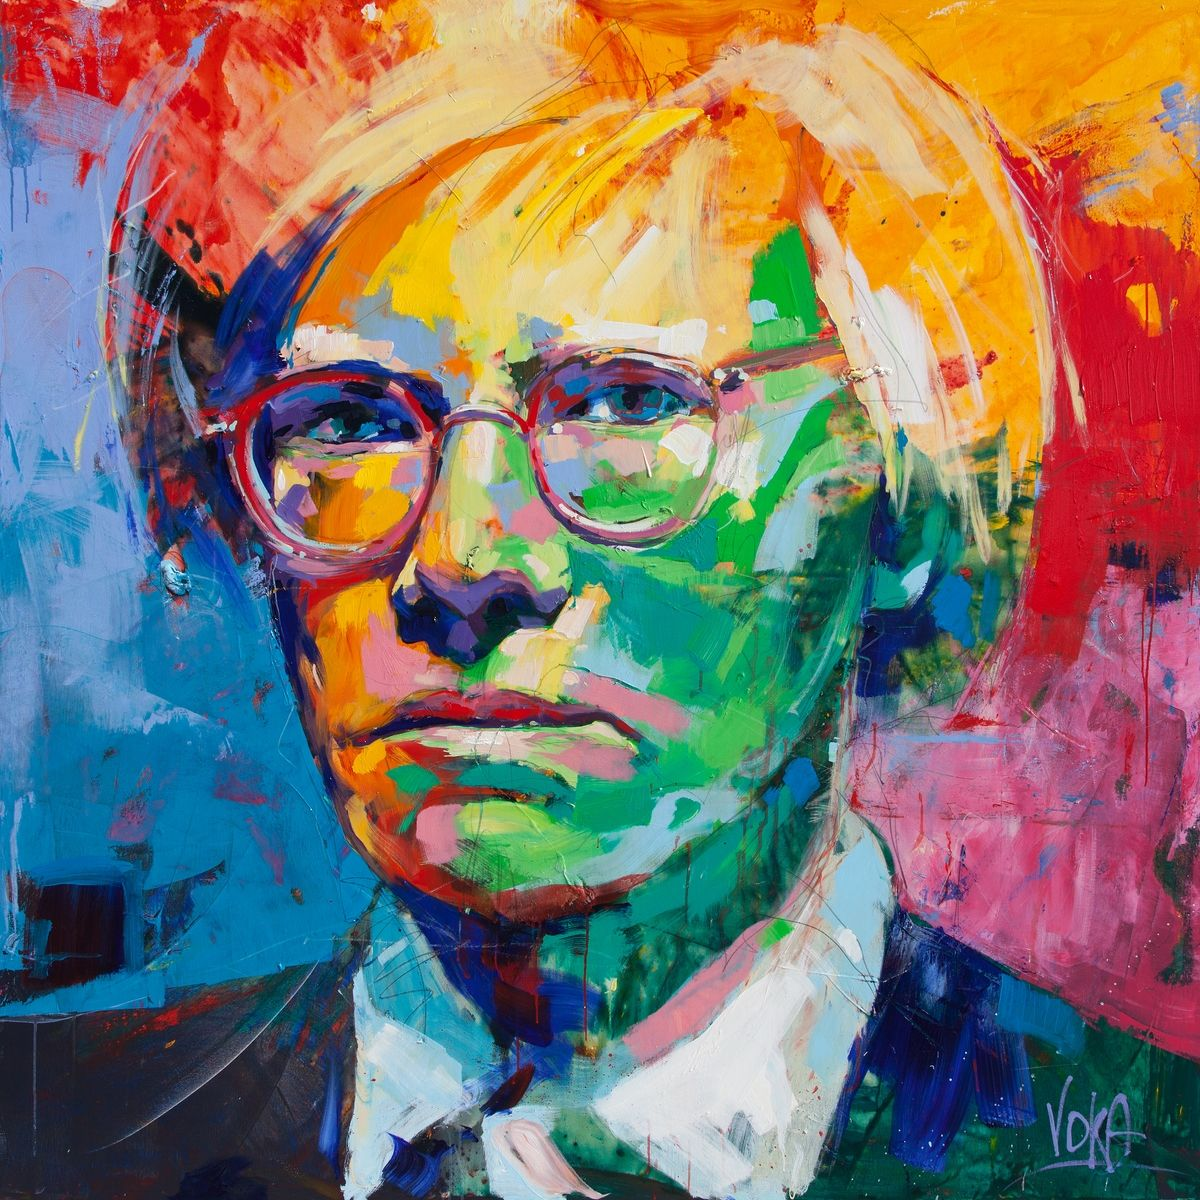 Cuadros Andy Warhol Voka Art Google Search Cuadros Taituta Pinterest